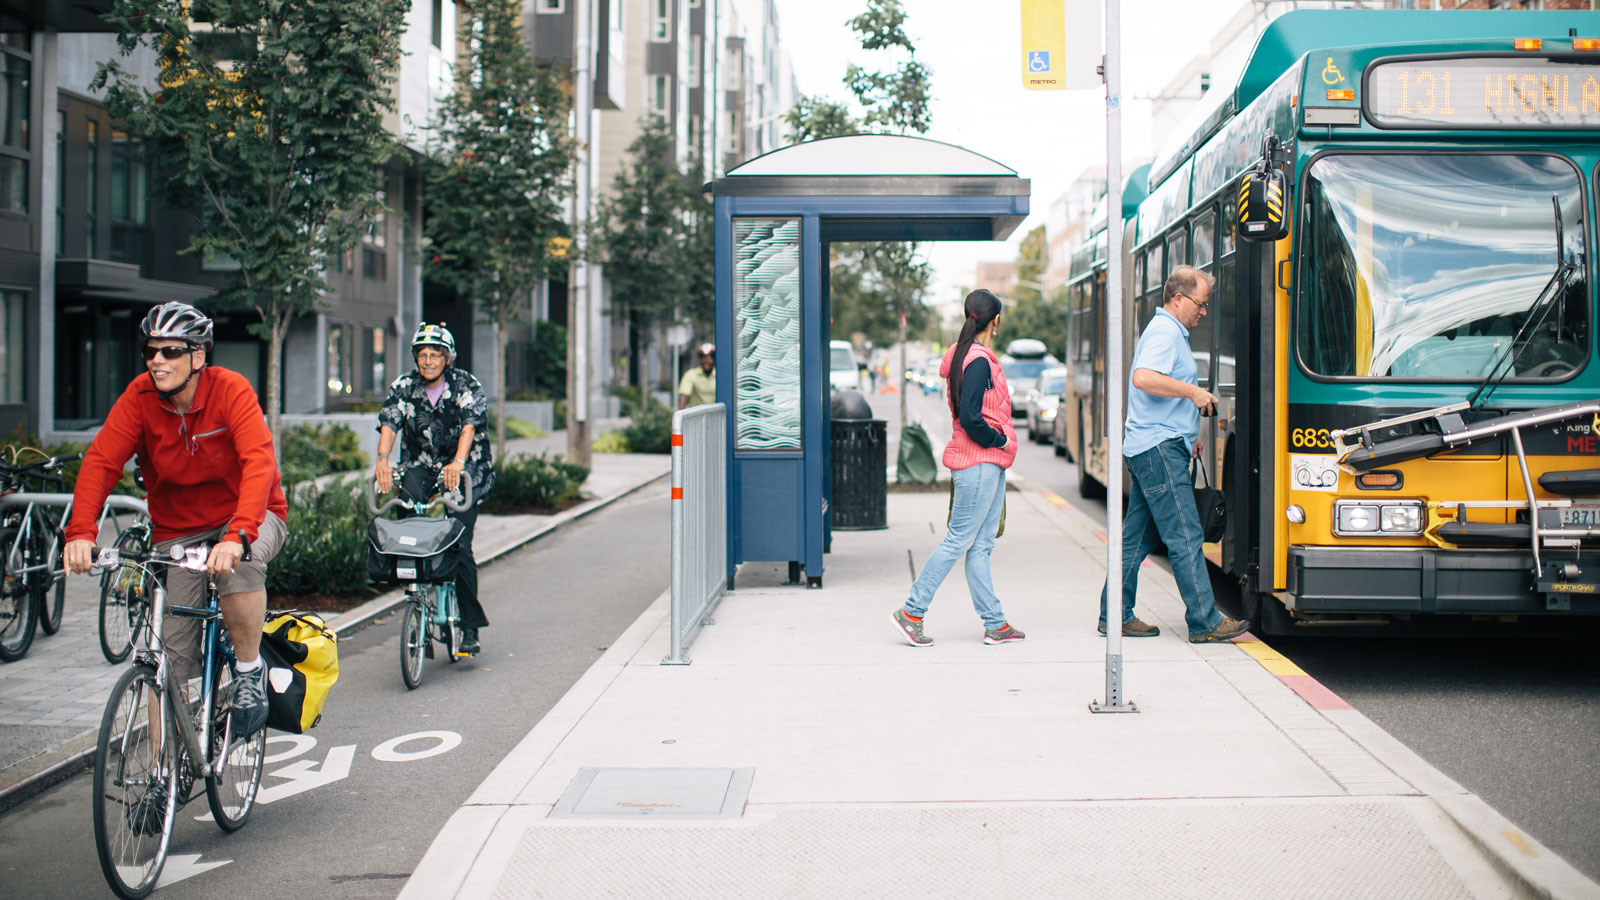 <h4>DESTINATION: ZERO CARBON</h4><h5>We're working to make all new cars electric by 2035, all buses electric by 2030, and to double the number of people who travel on foot, bike or public transit by 2030.</h5>